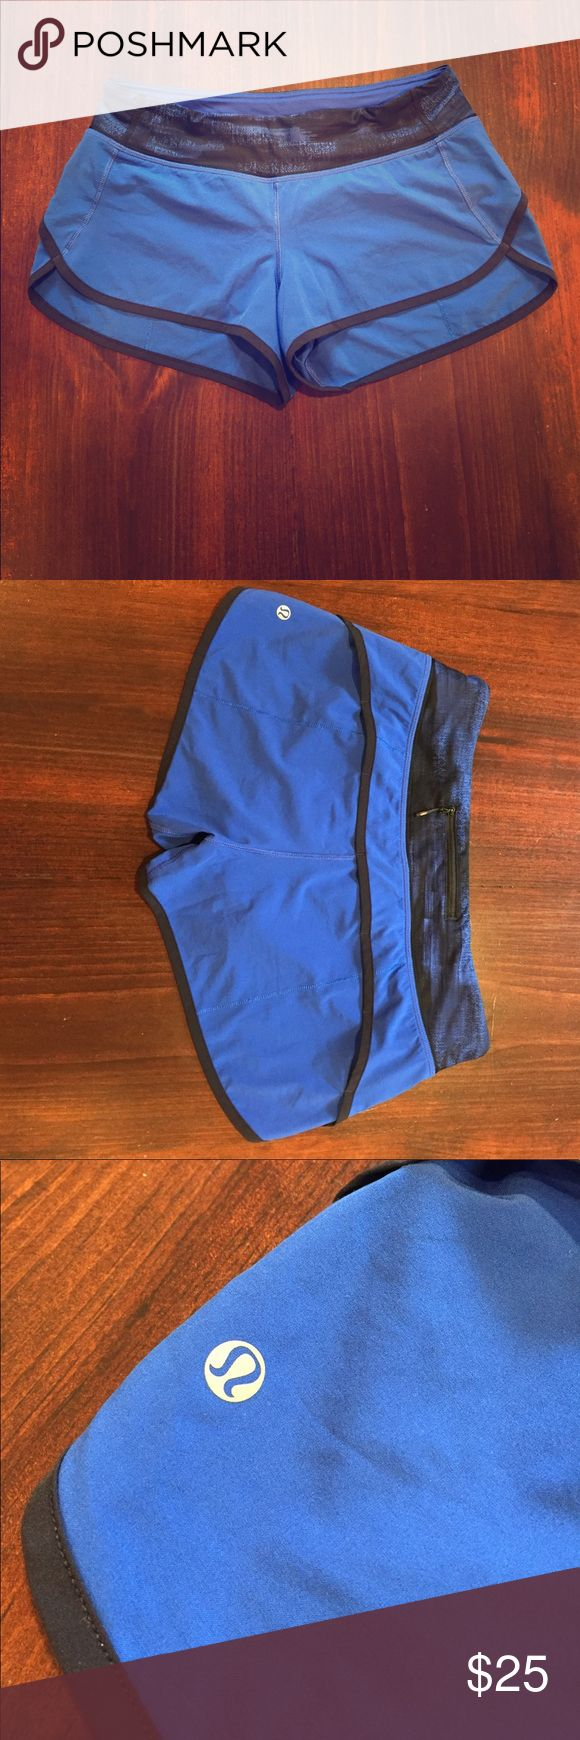 LuLuLemon runners Dark royal blue LuLuLemon runners - size 6.  Super lightweight and silky soft!  Two front hidden inside pockets and one rear zip pocket.  Panty type liner inside.  These are in excellent condition and will keep you cool as you run around town on those hot summer days!! Thanks for shopping! lululemon athletica Shorts